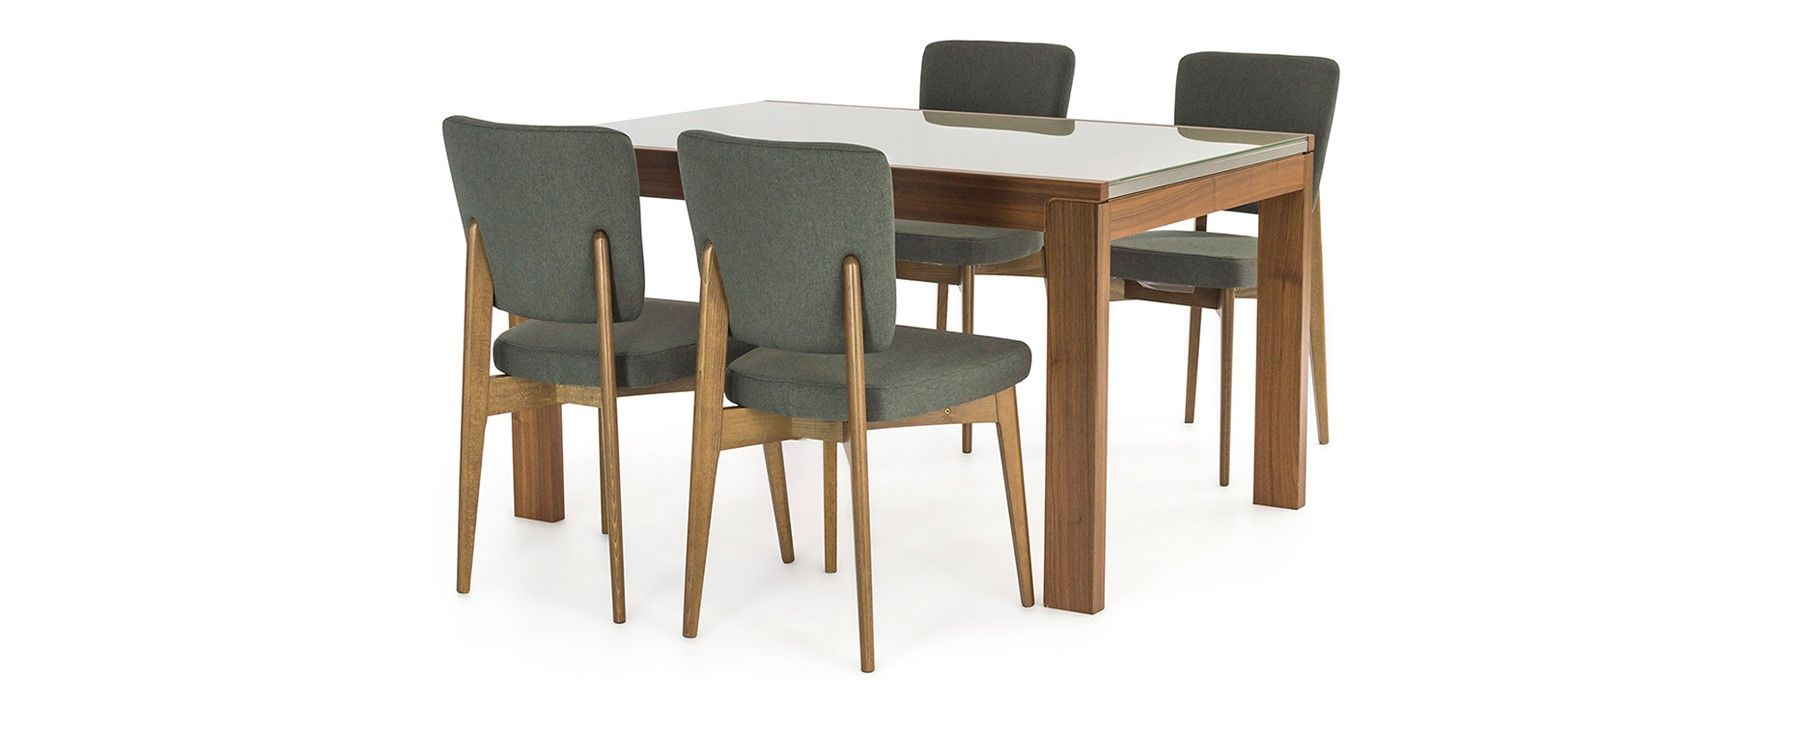 Smart Dining Table photo - 4